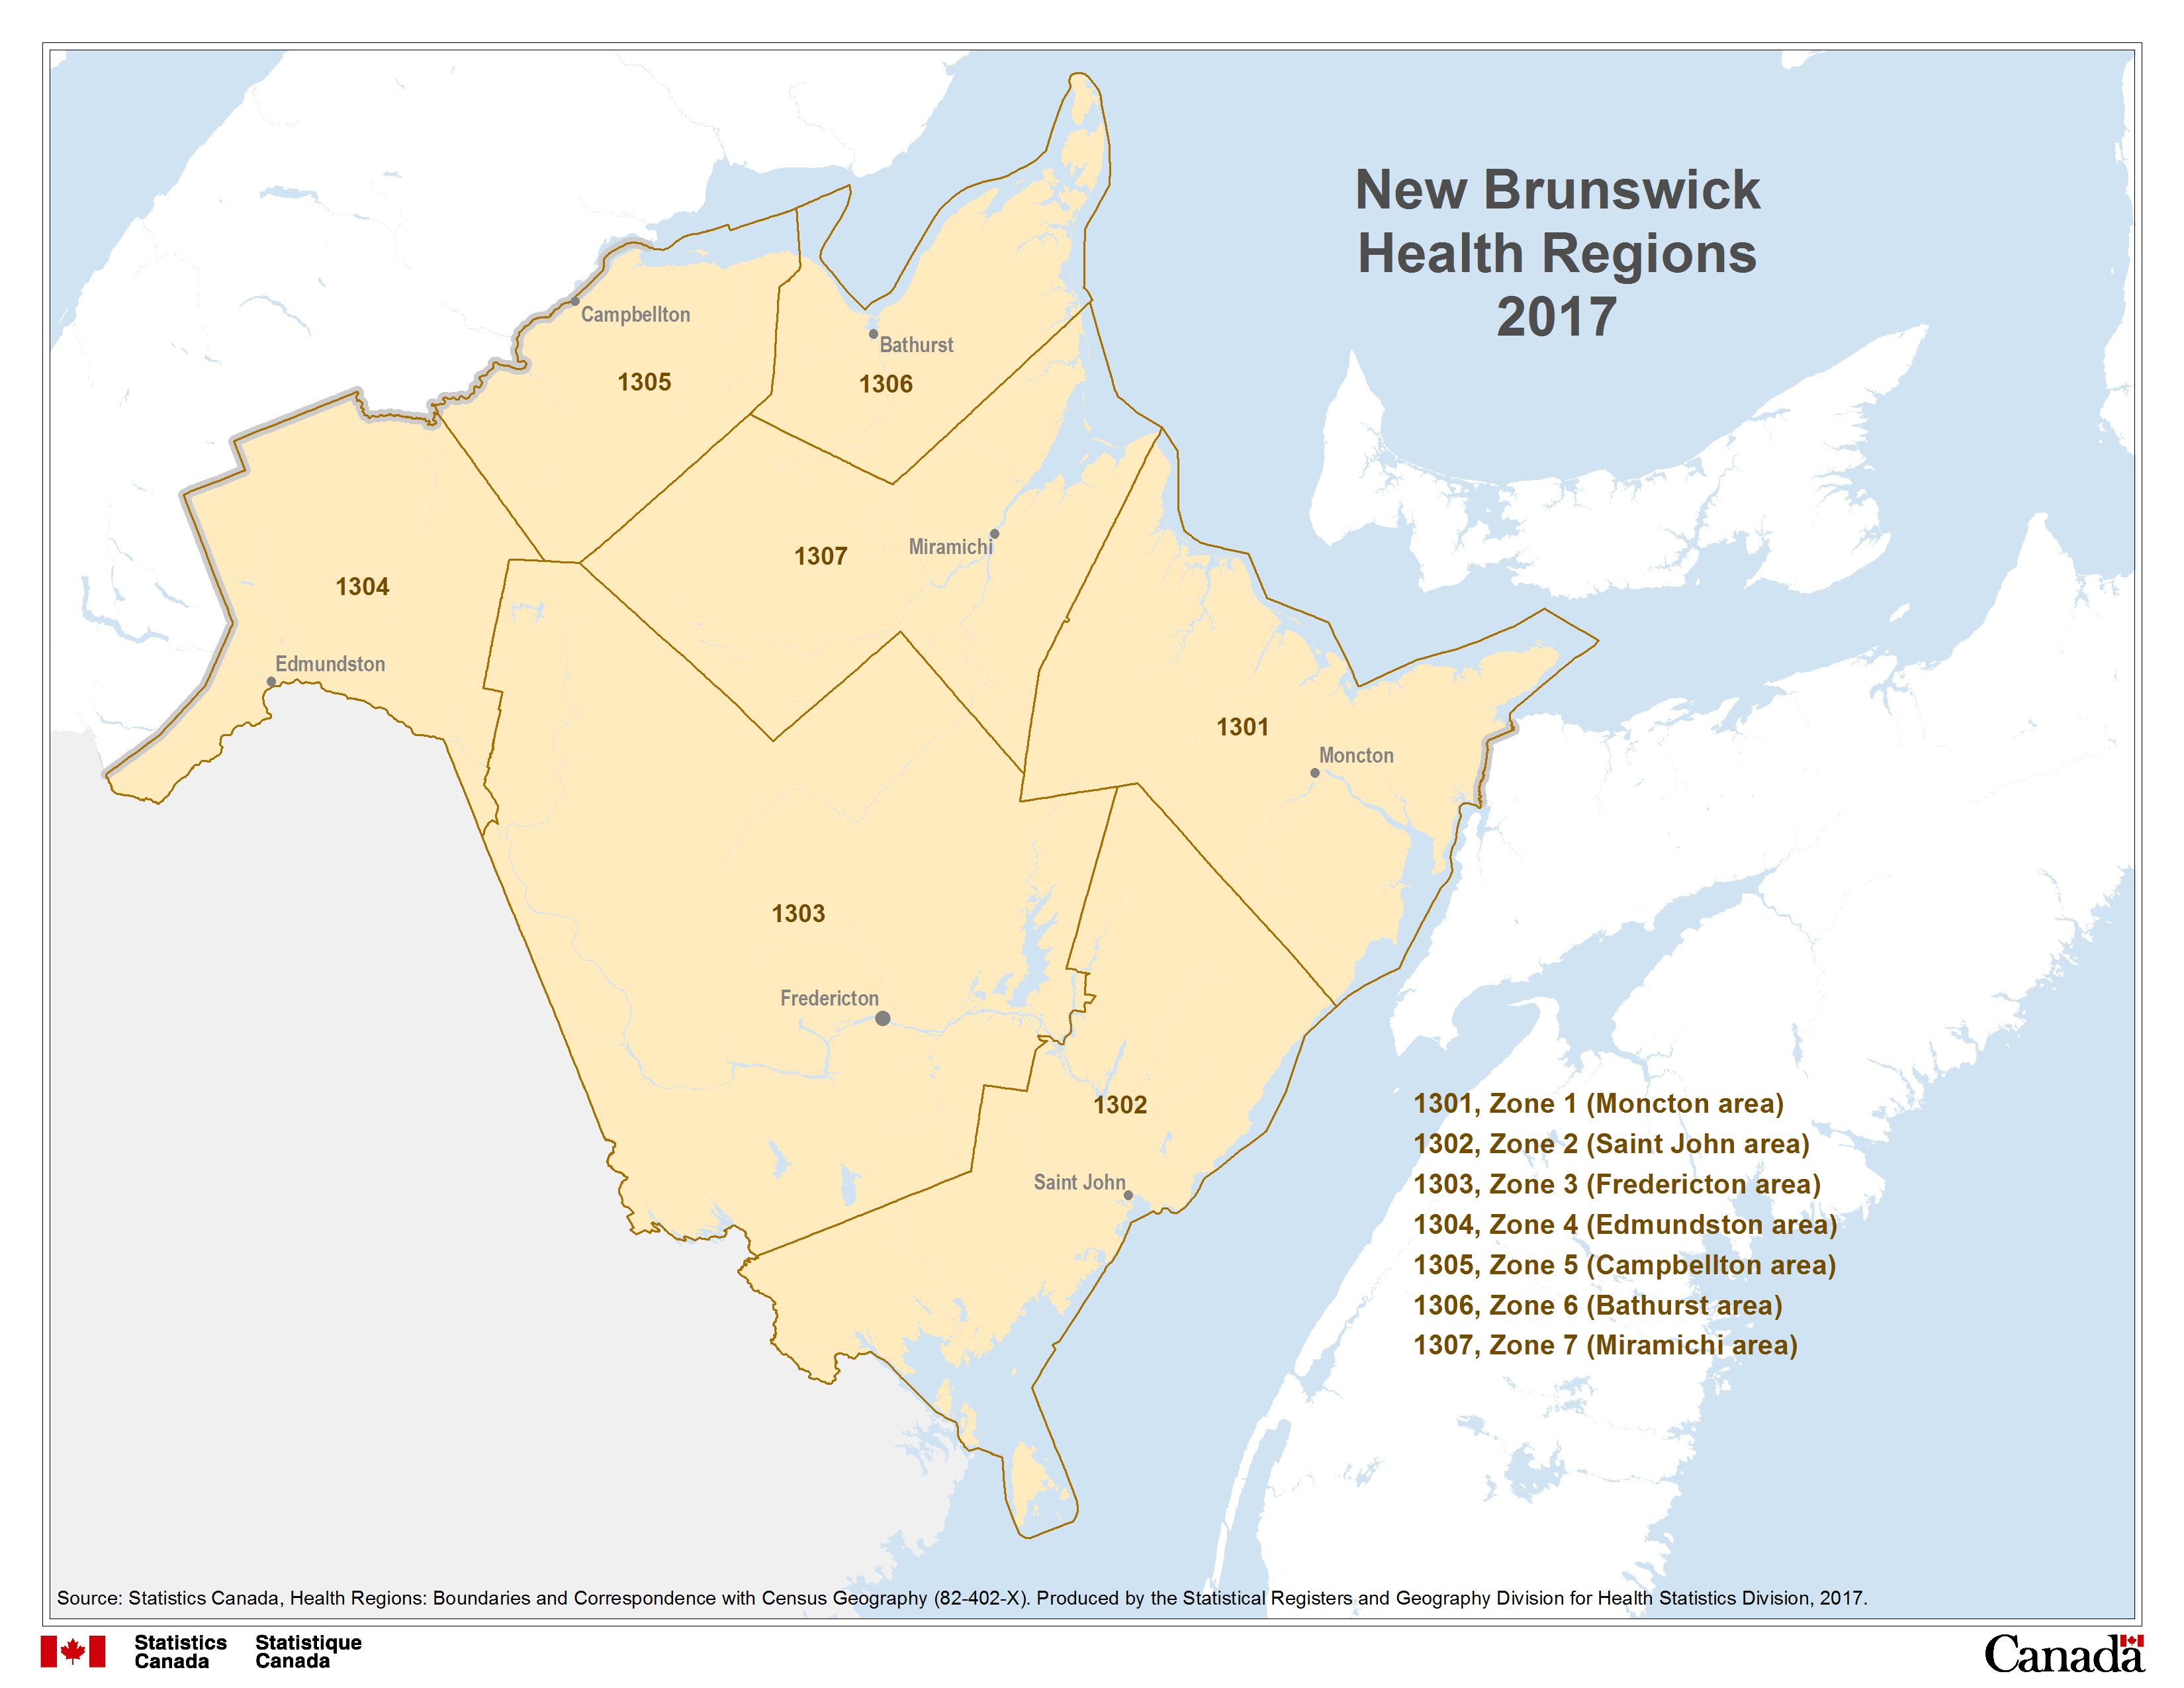 Map Of Canada New Brunswick.Map 4 New Brunswick Health Regions 2017